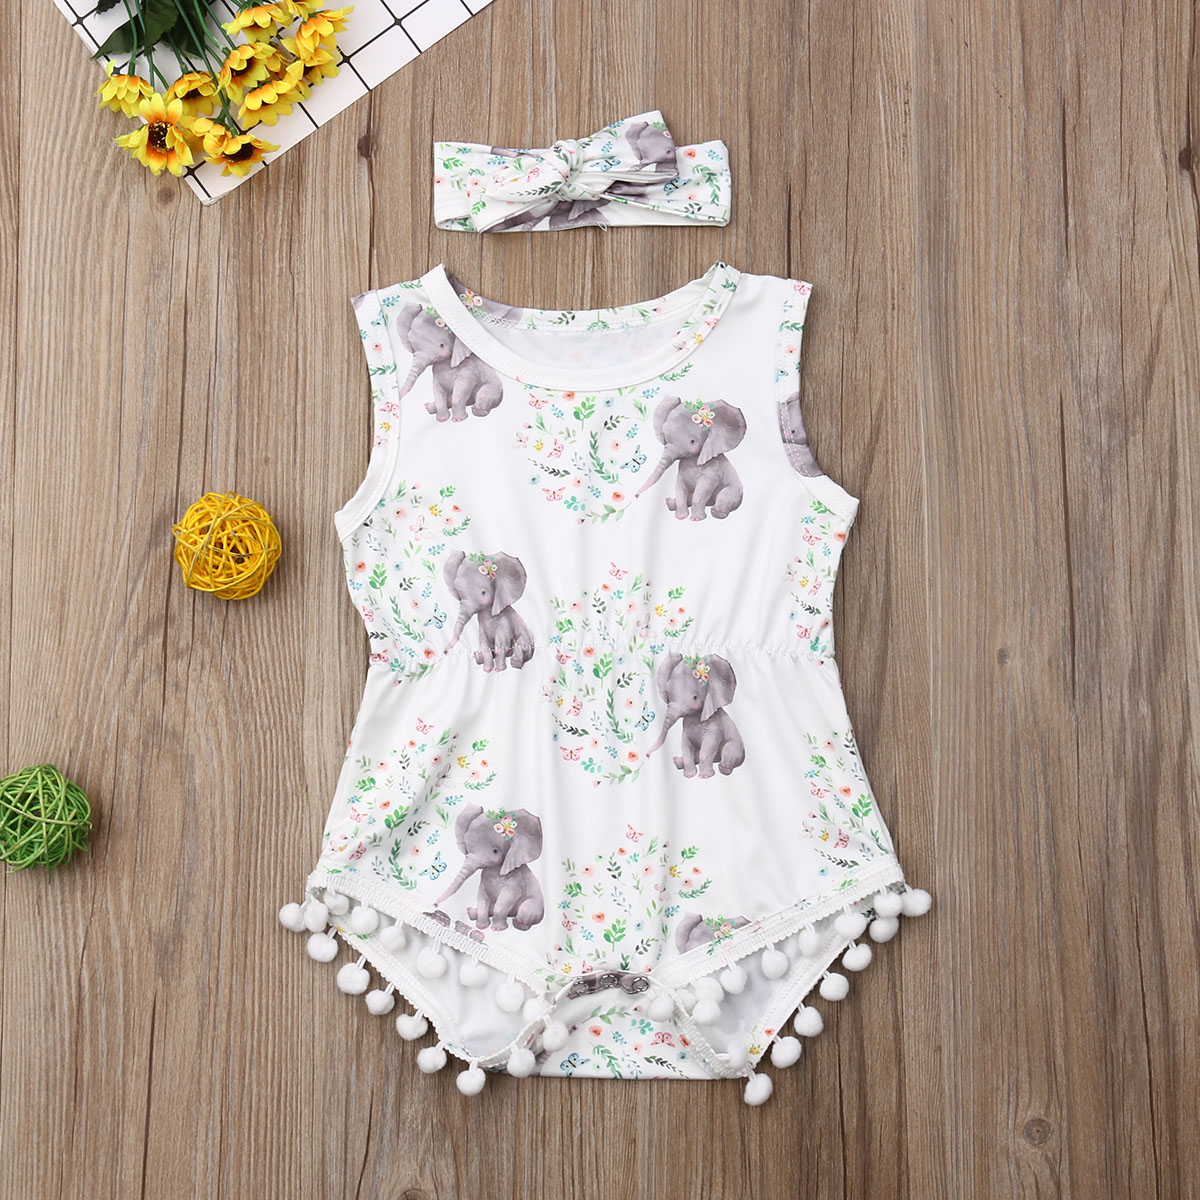 Newborn Infant Baby Girl Elephant Summer Romper Clothes Jumpsuit Headband Outfit